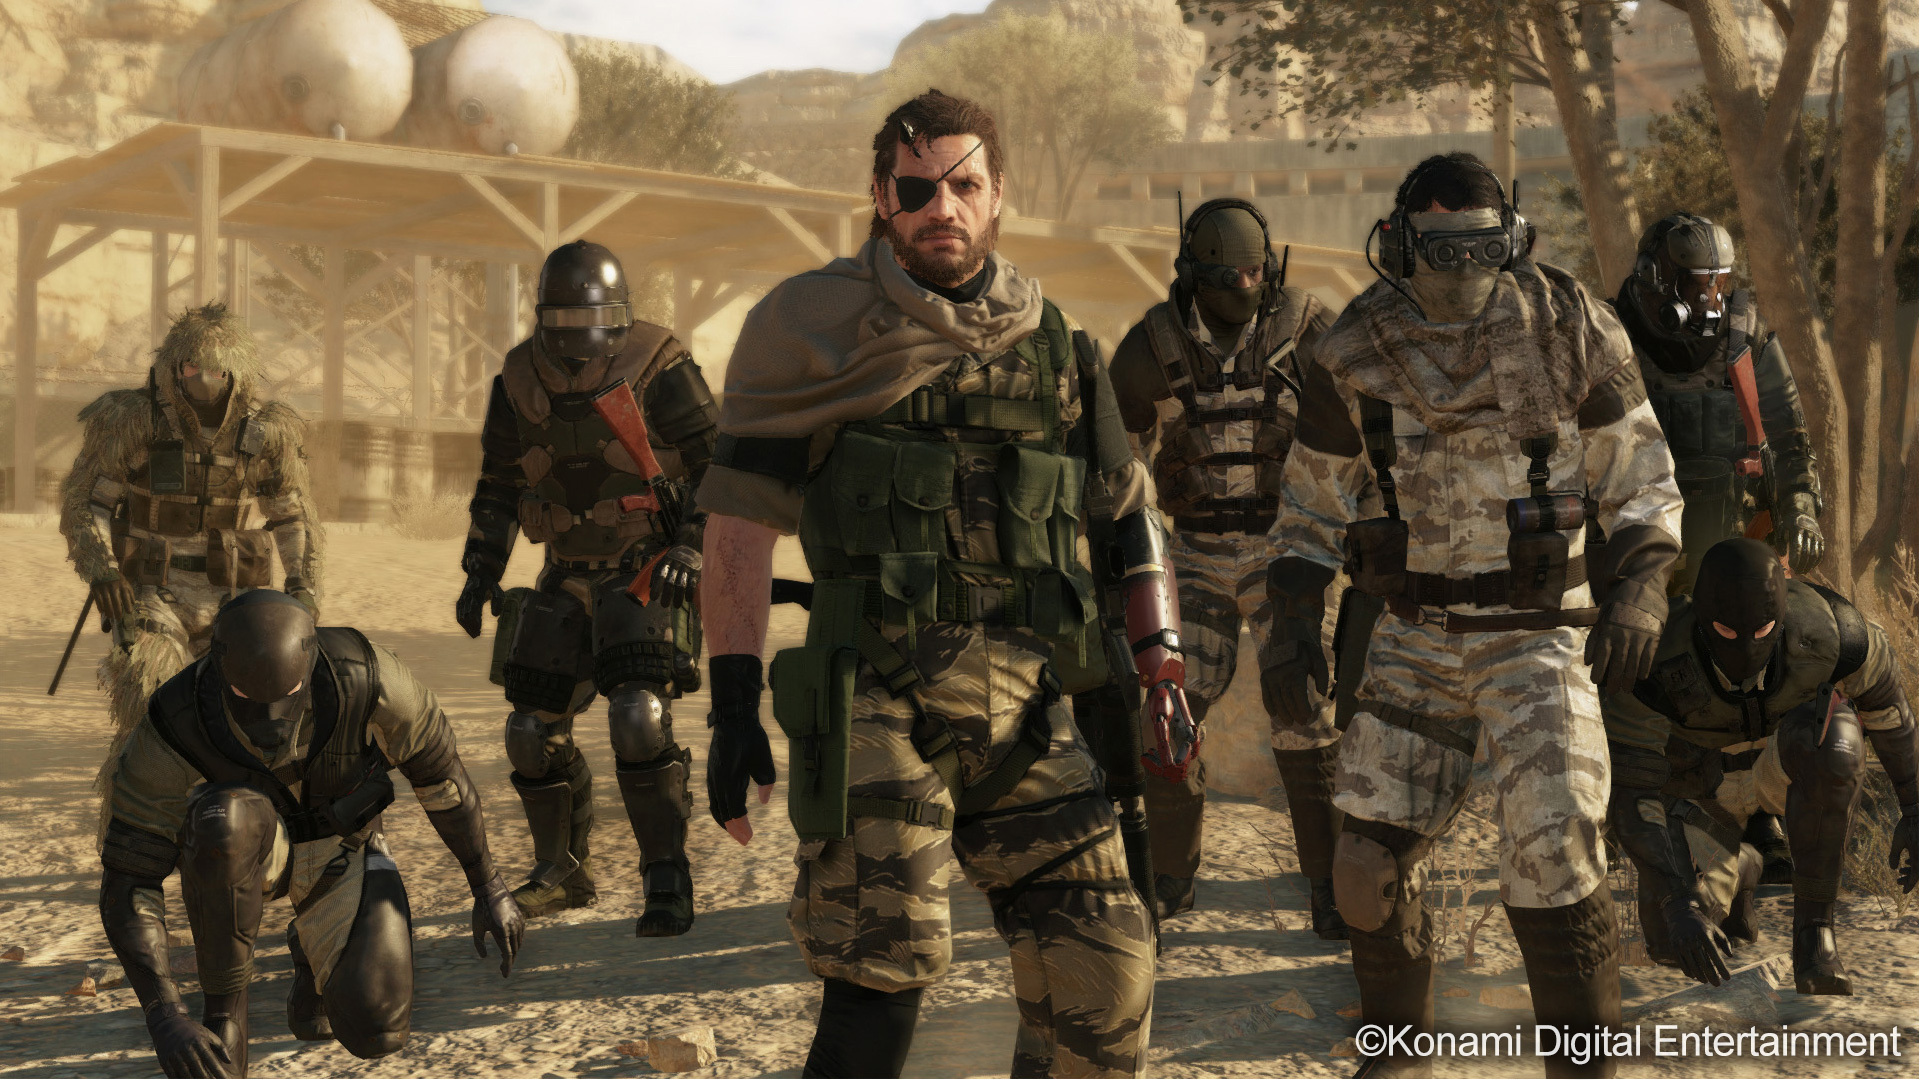 Metal Gear Solid V The Phantom Pain Wallpapers Pictures Images